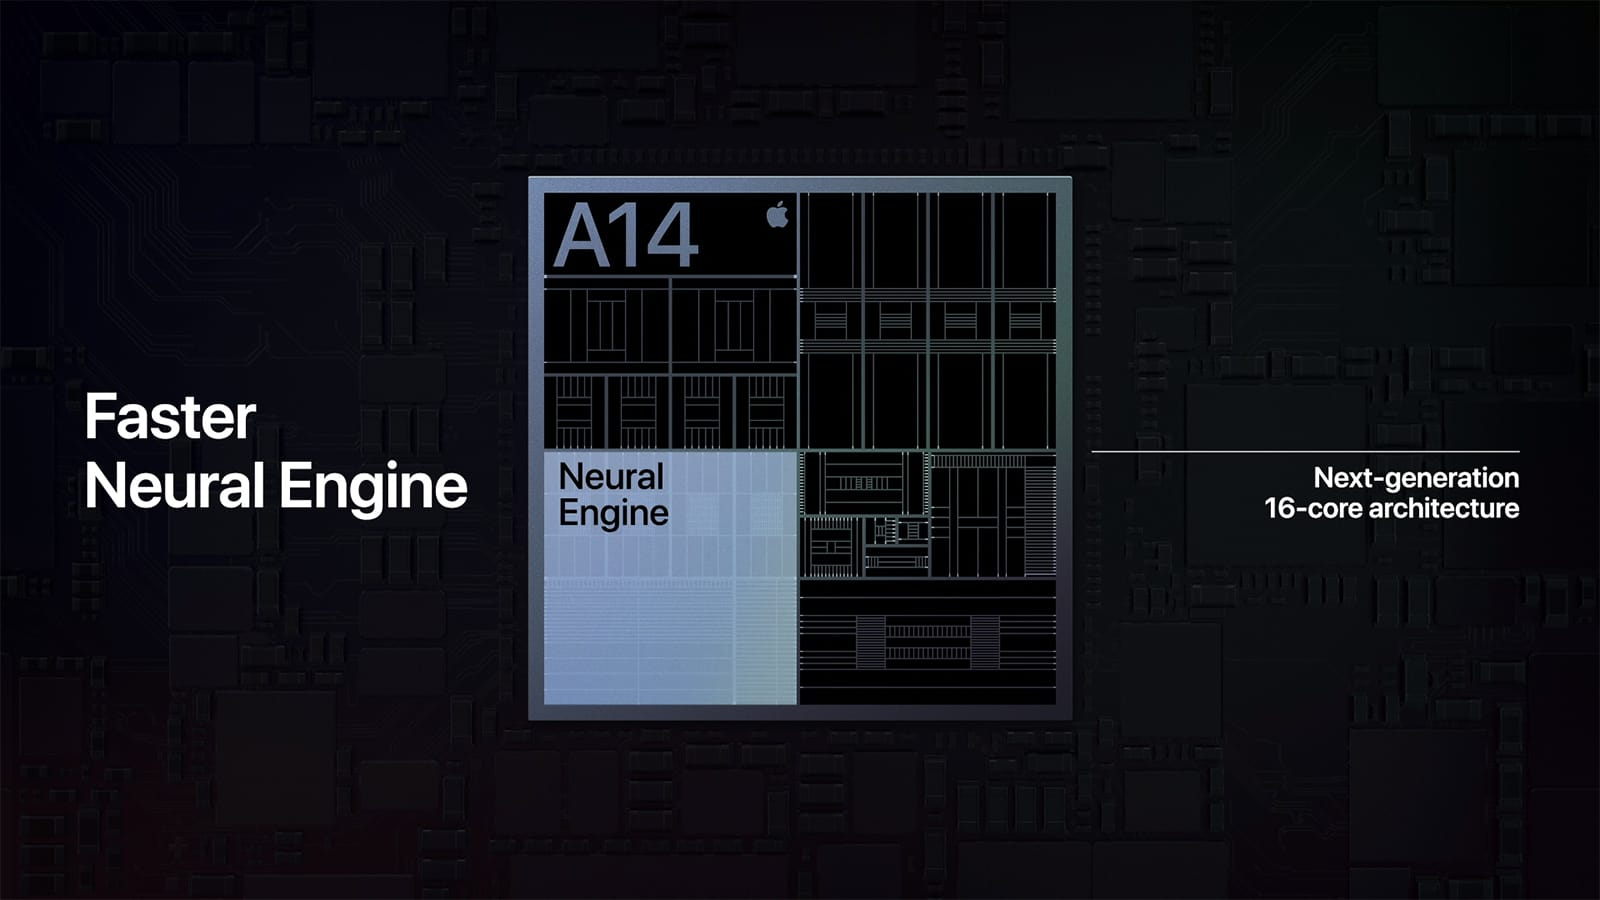 A14 Faster Neural Engine